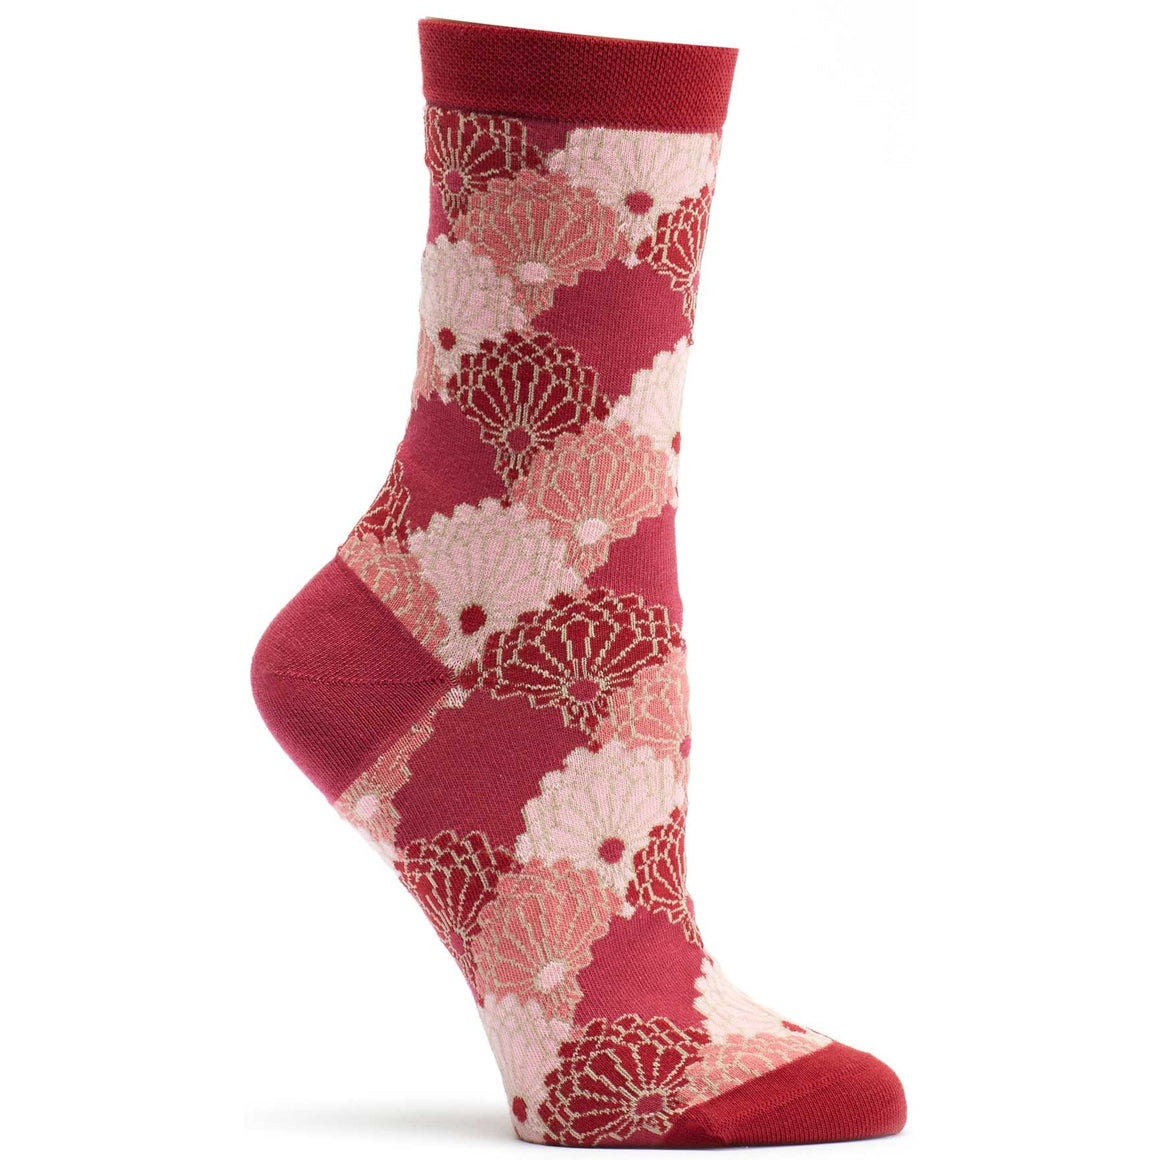 Ozone Design Kimono Threads Womens Novelty Sock in Rose